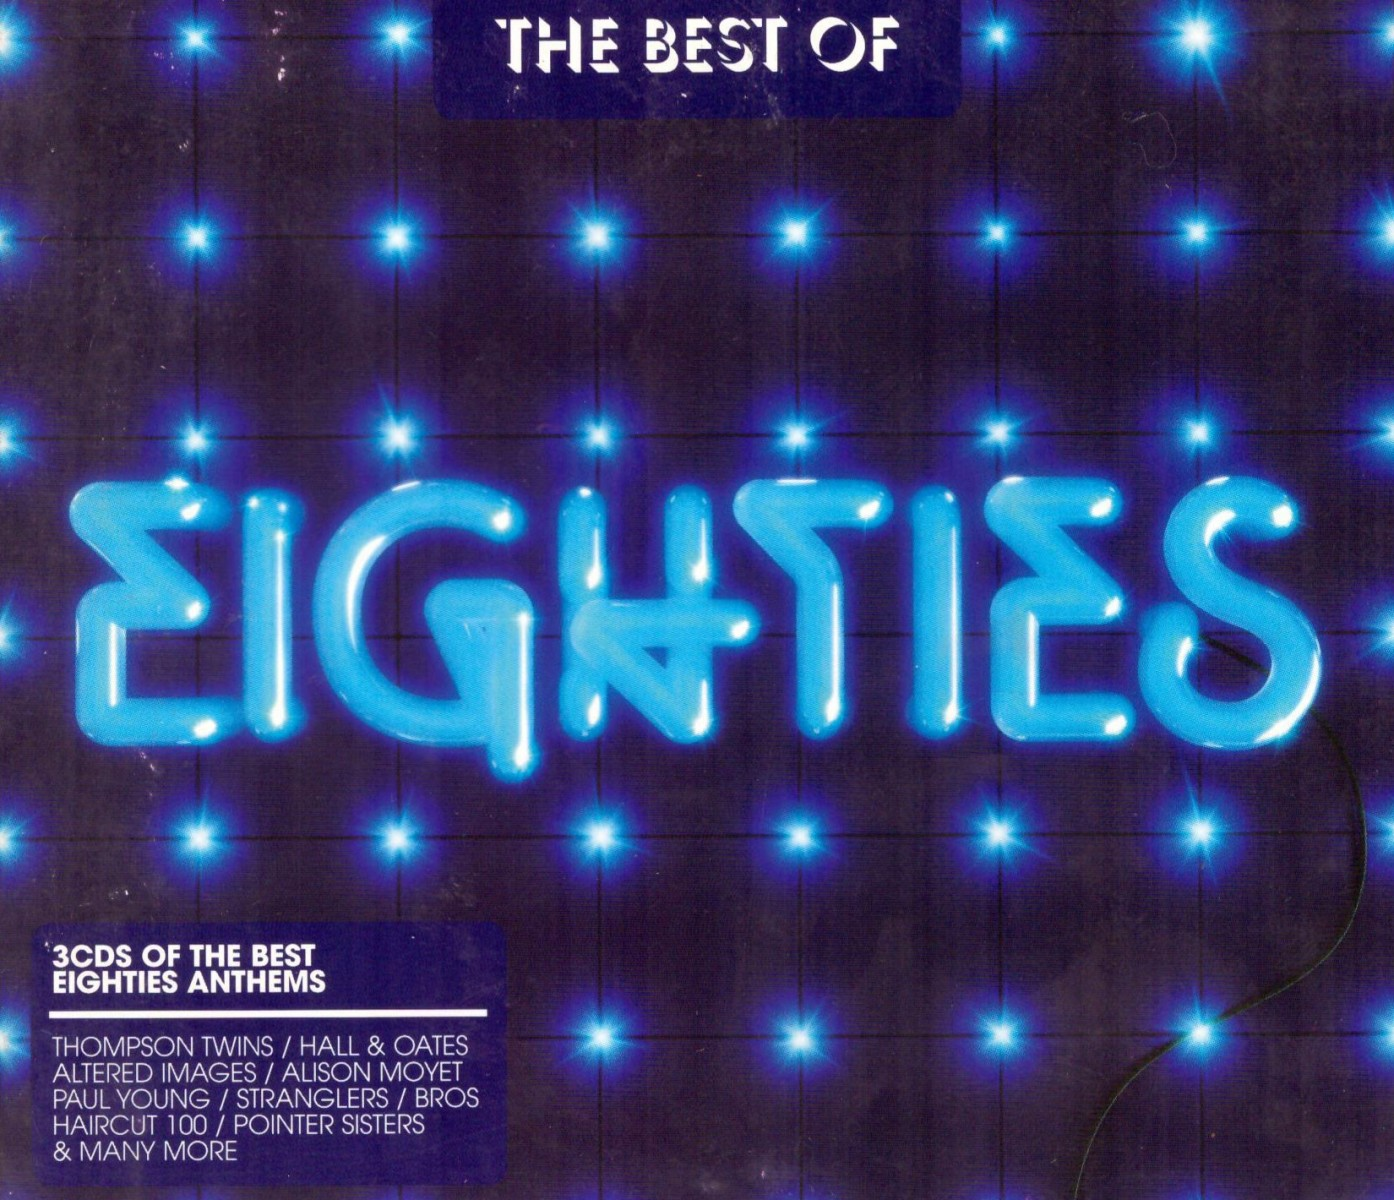 The Best Of The Eighties CD - BOFCD01